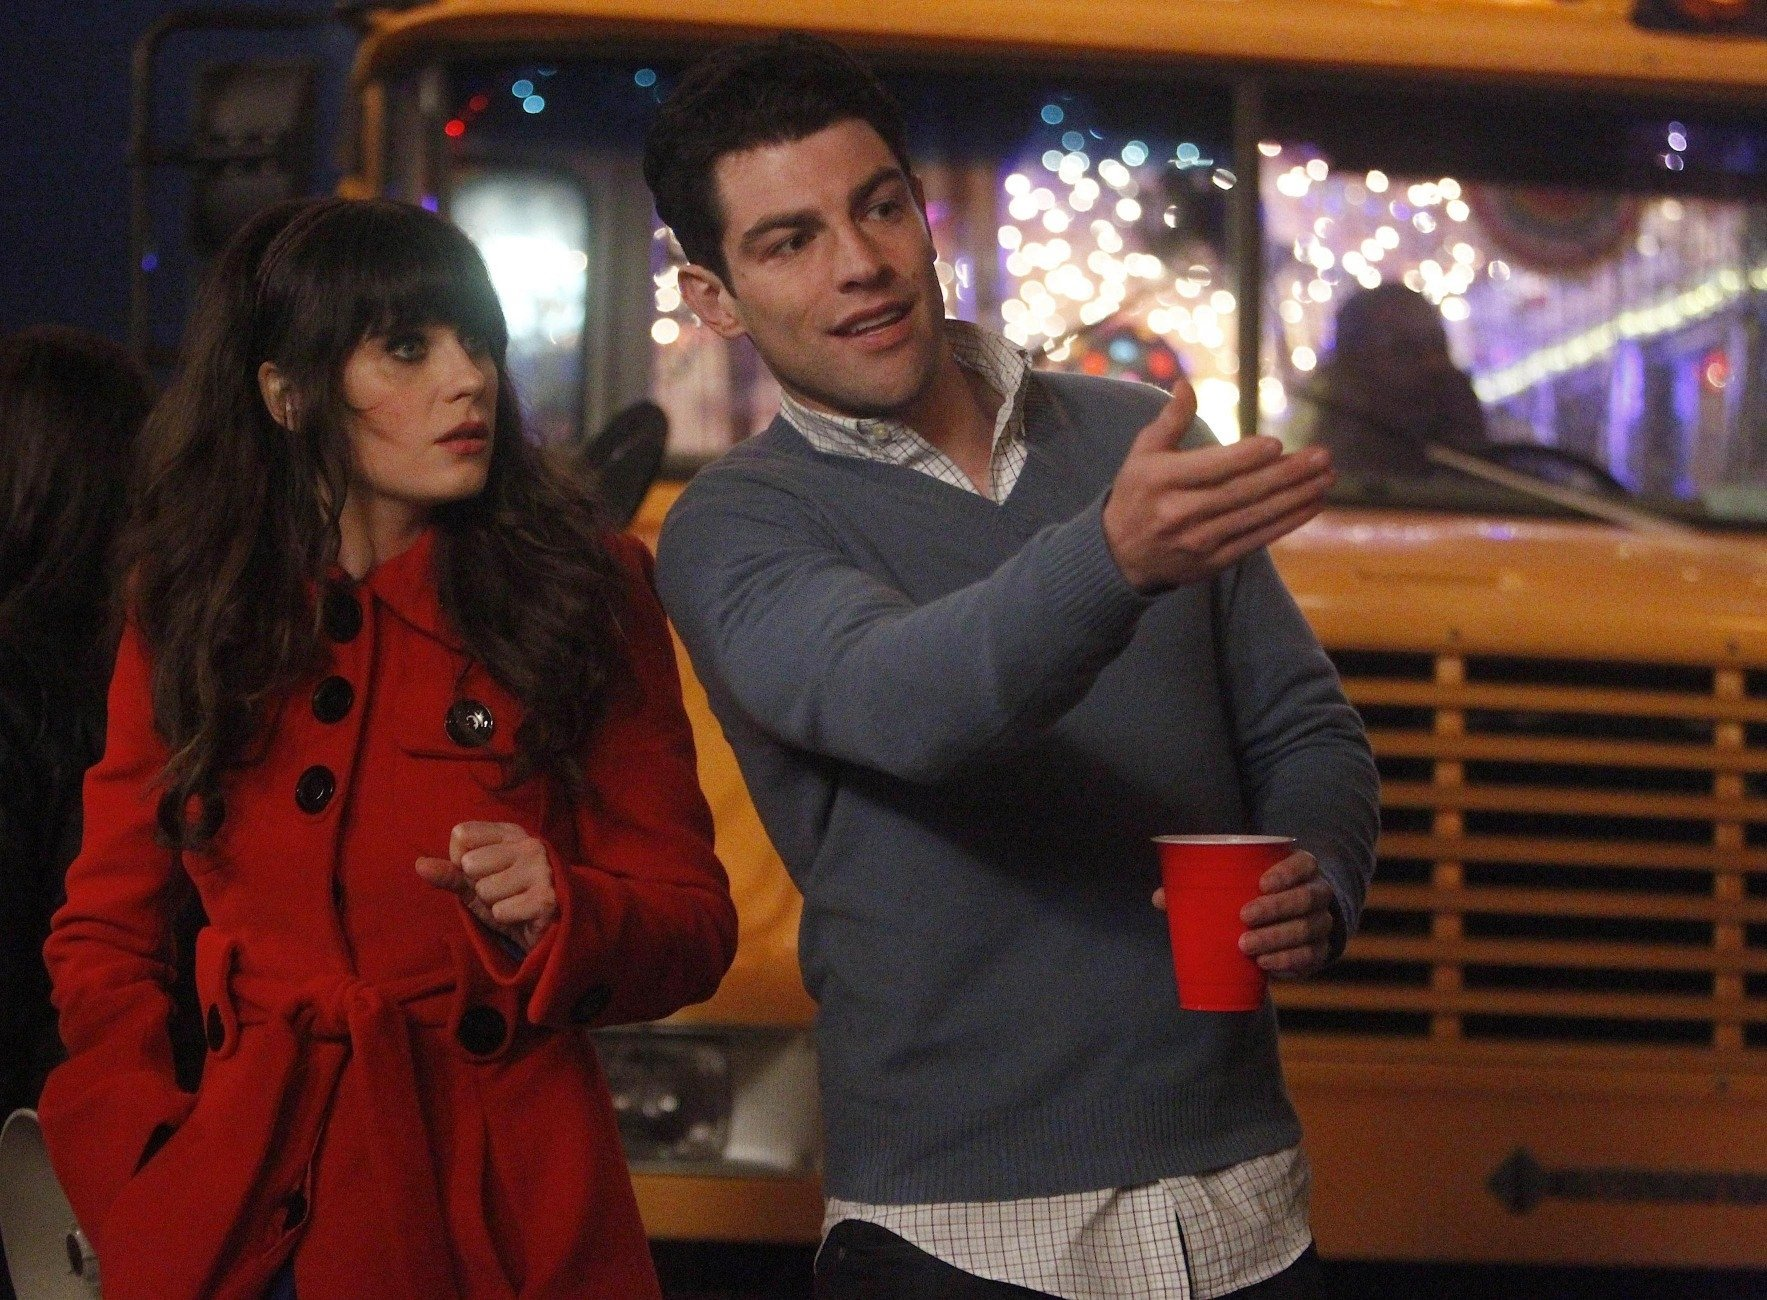 new girl wallpaper and background image 1767x1300 id